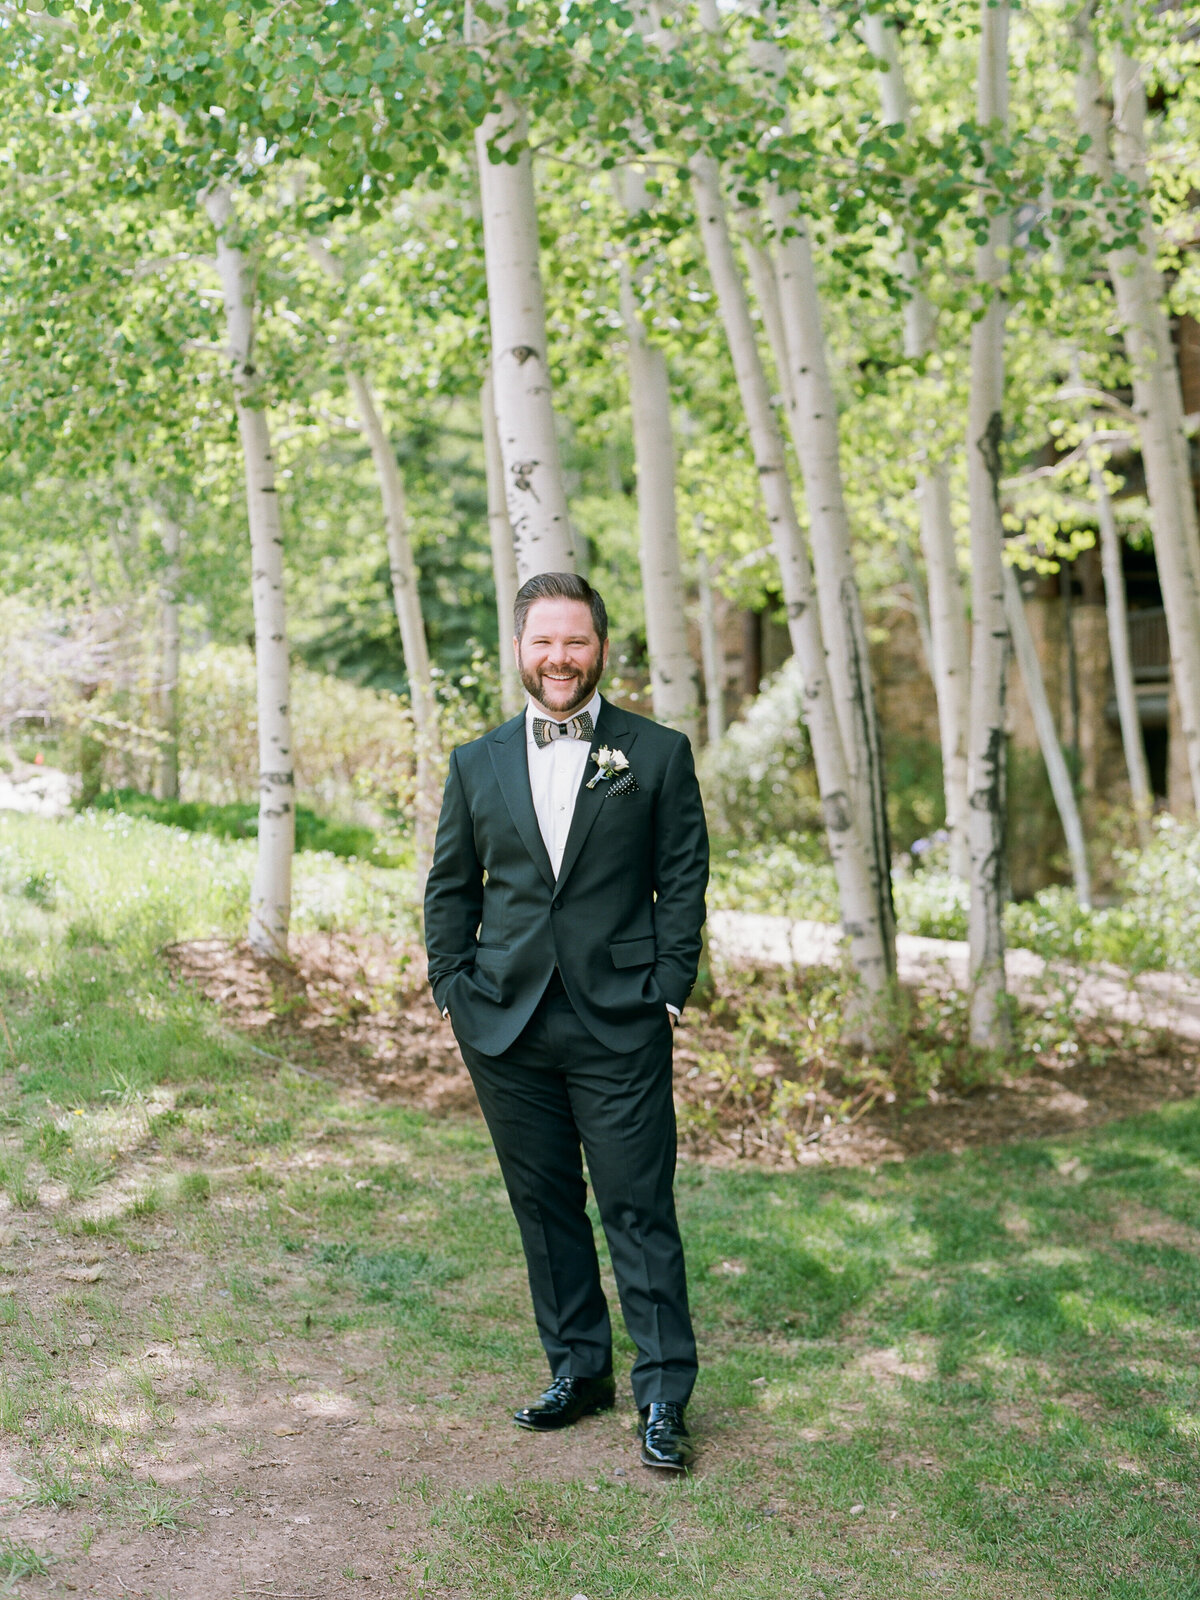 Kelly Karli - colleen-tony-wedding-bride-groom61